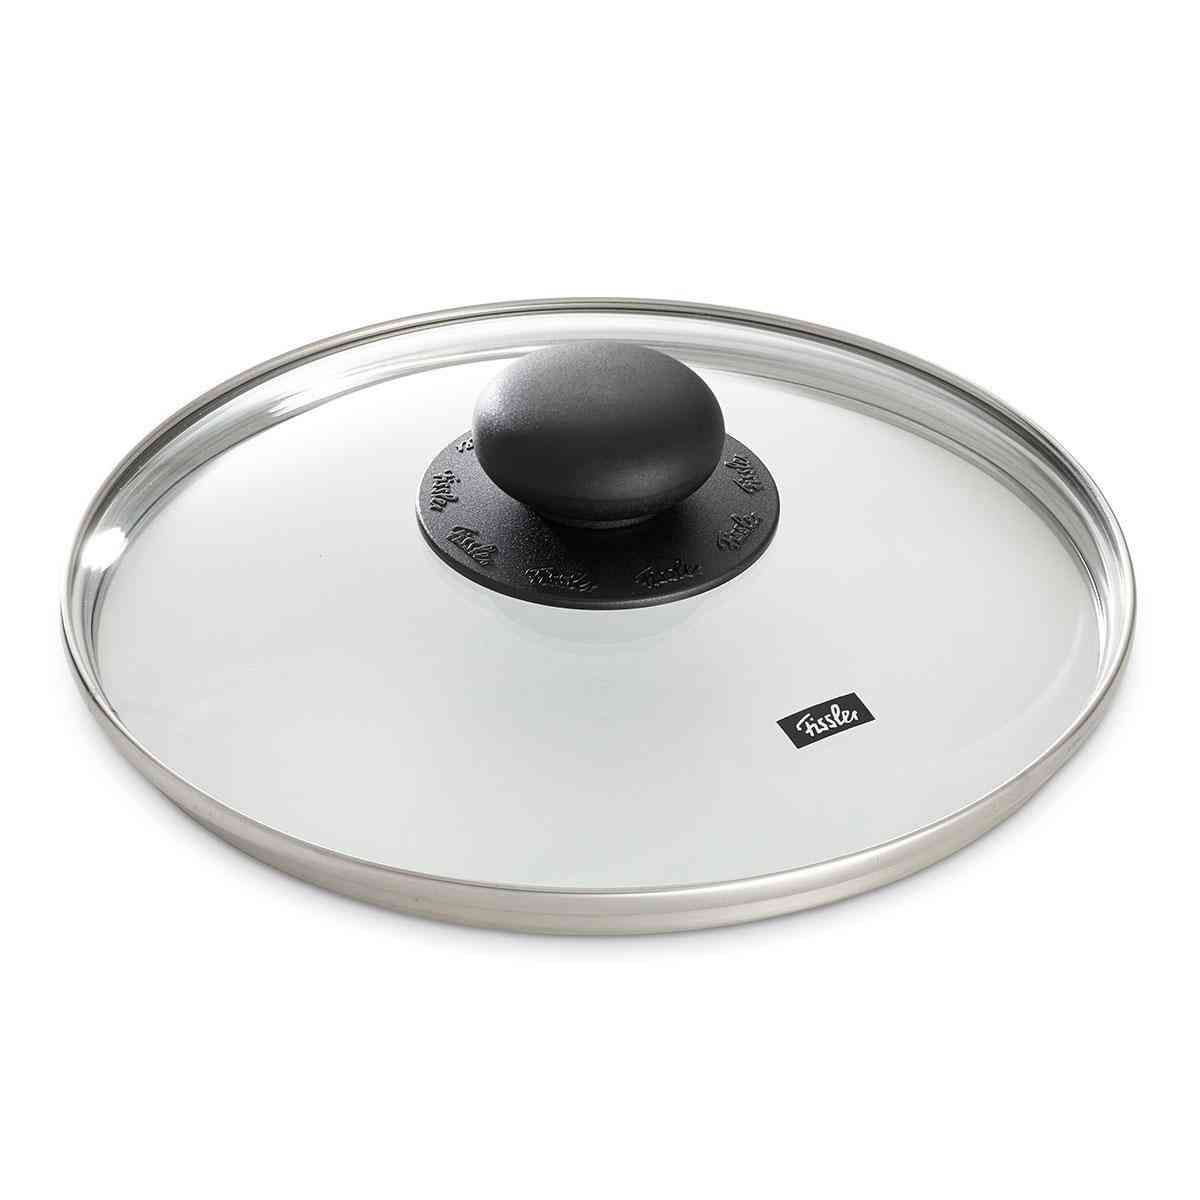 Open Box - Pressure Cooker Glass Lid, 8.7 Inch